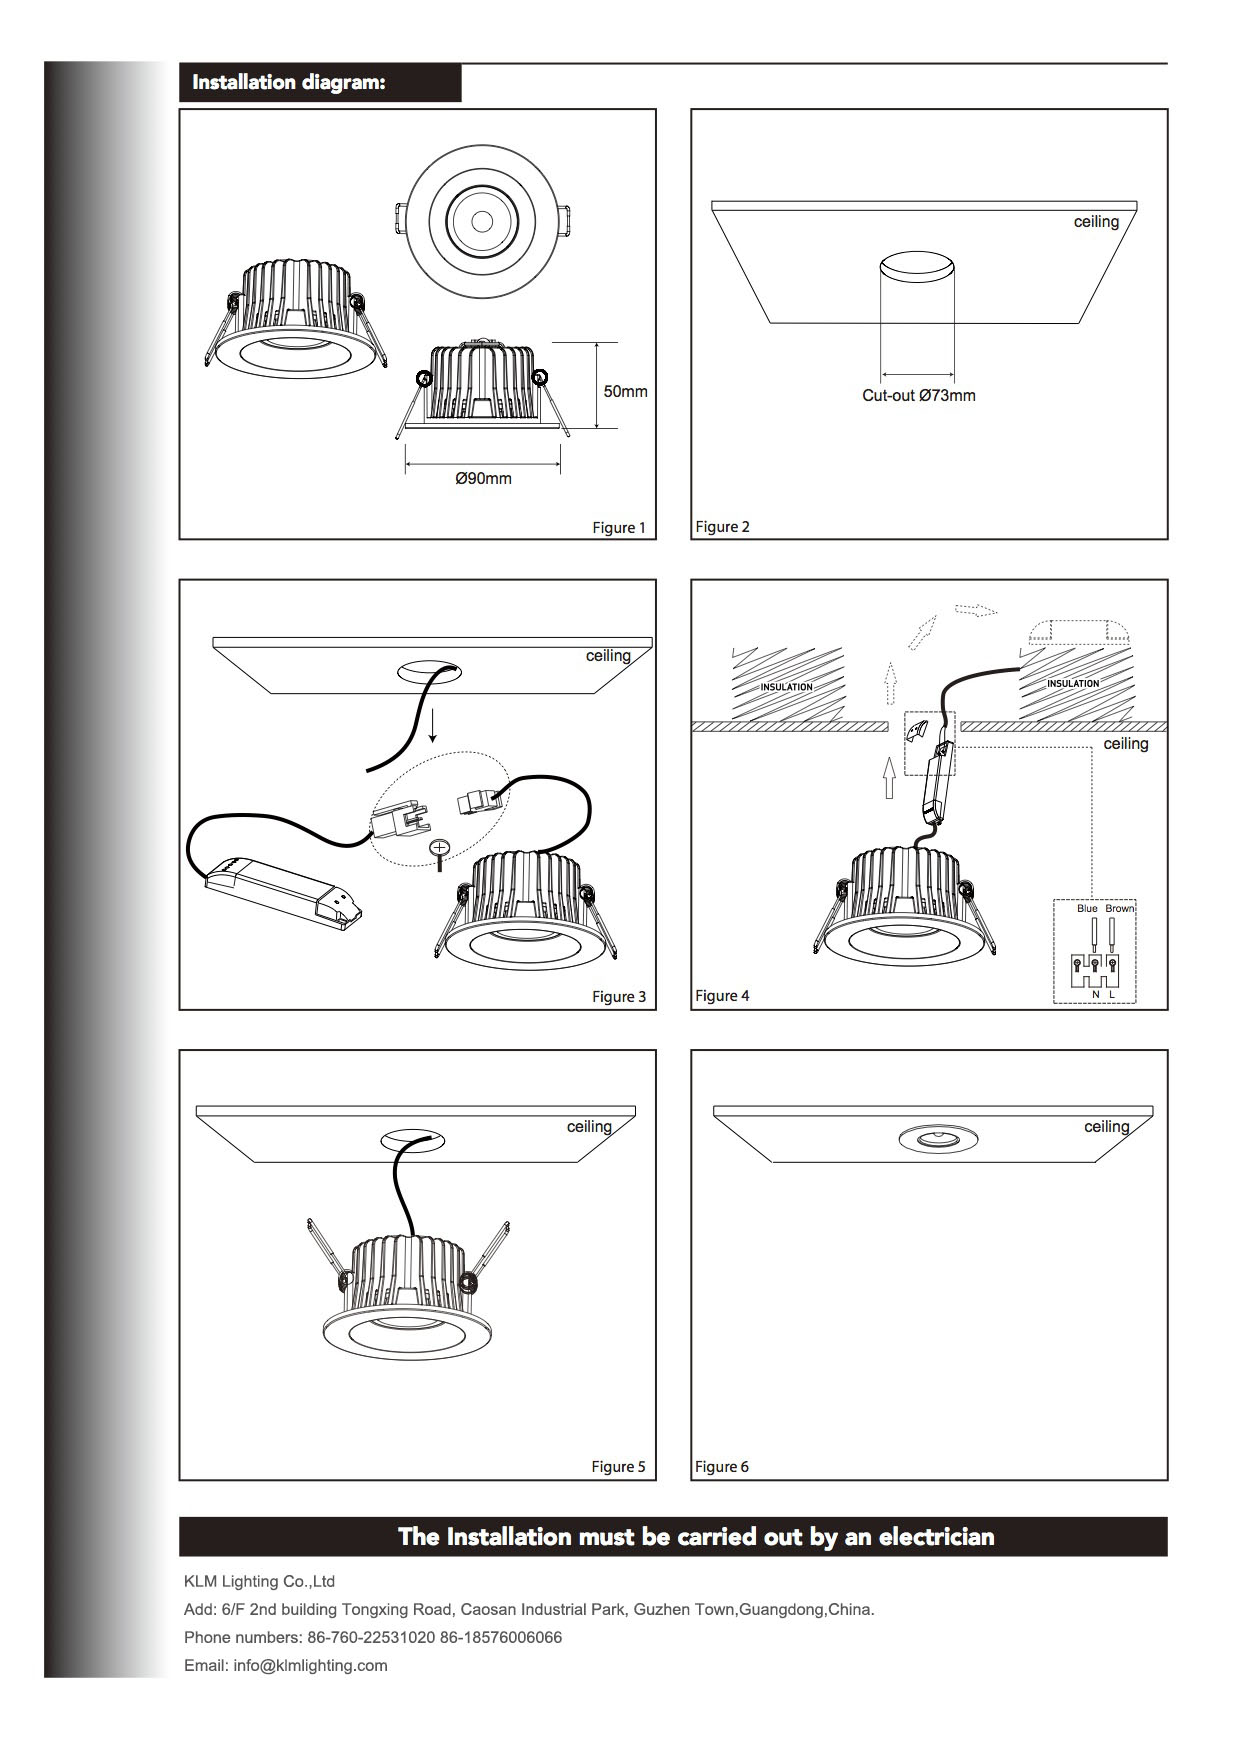 Downlight wiring instructions wiring center installation guides led light manufacturer led downlights ip65 rh klmlighting com omega alarm wiring diagrams rj45 wiring diagram asfbconference2016 Images